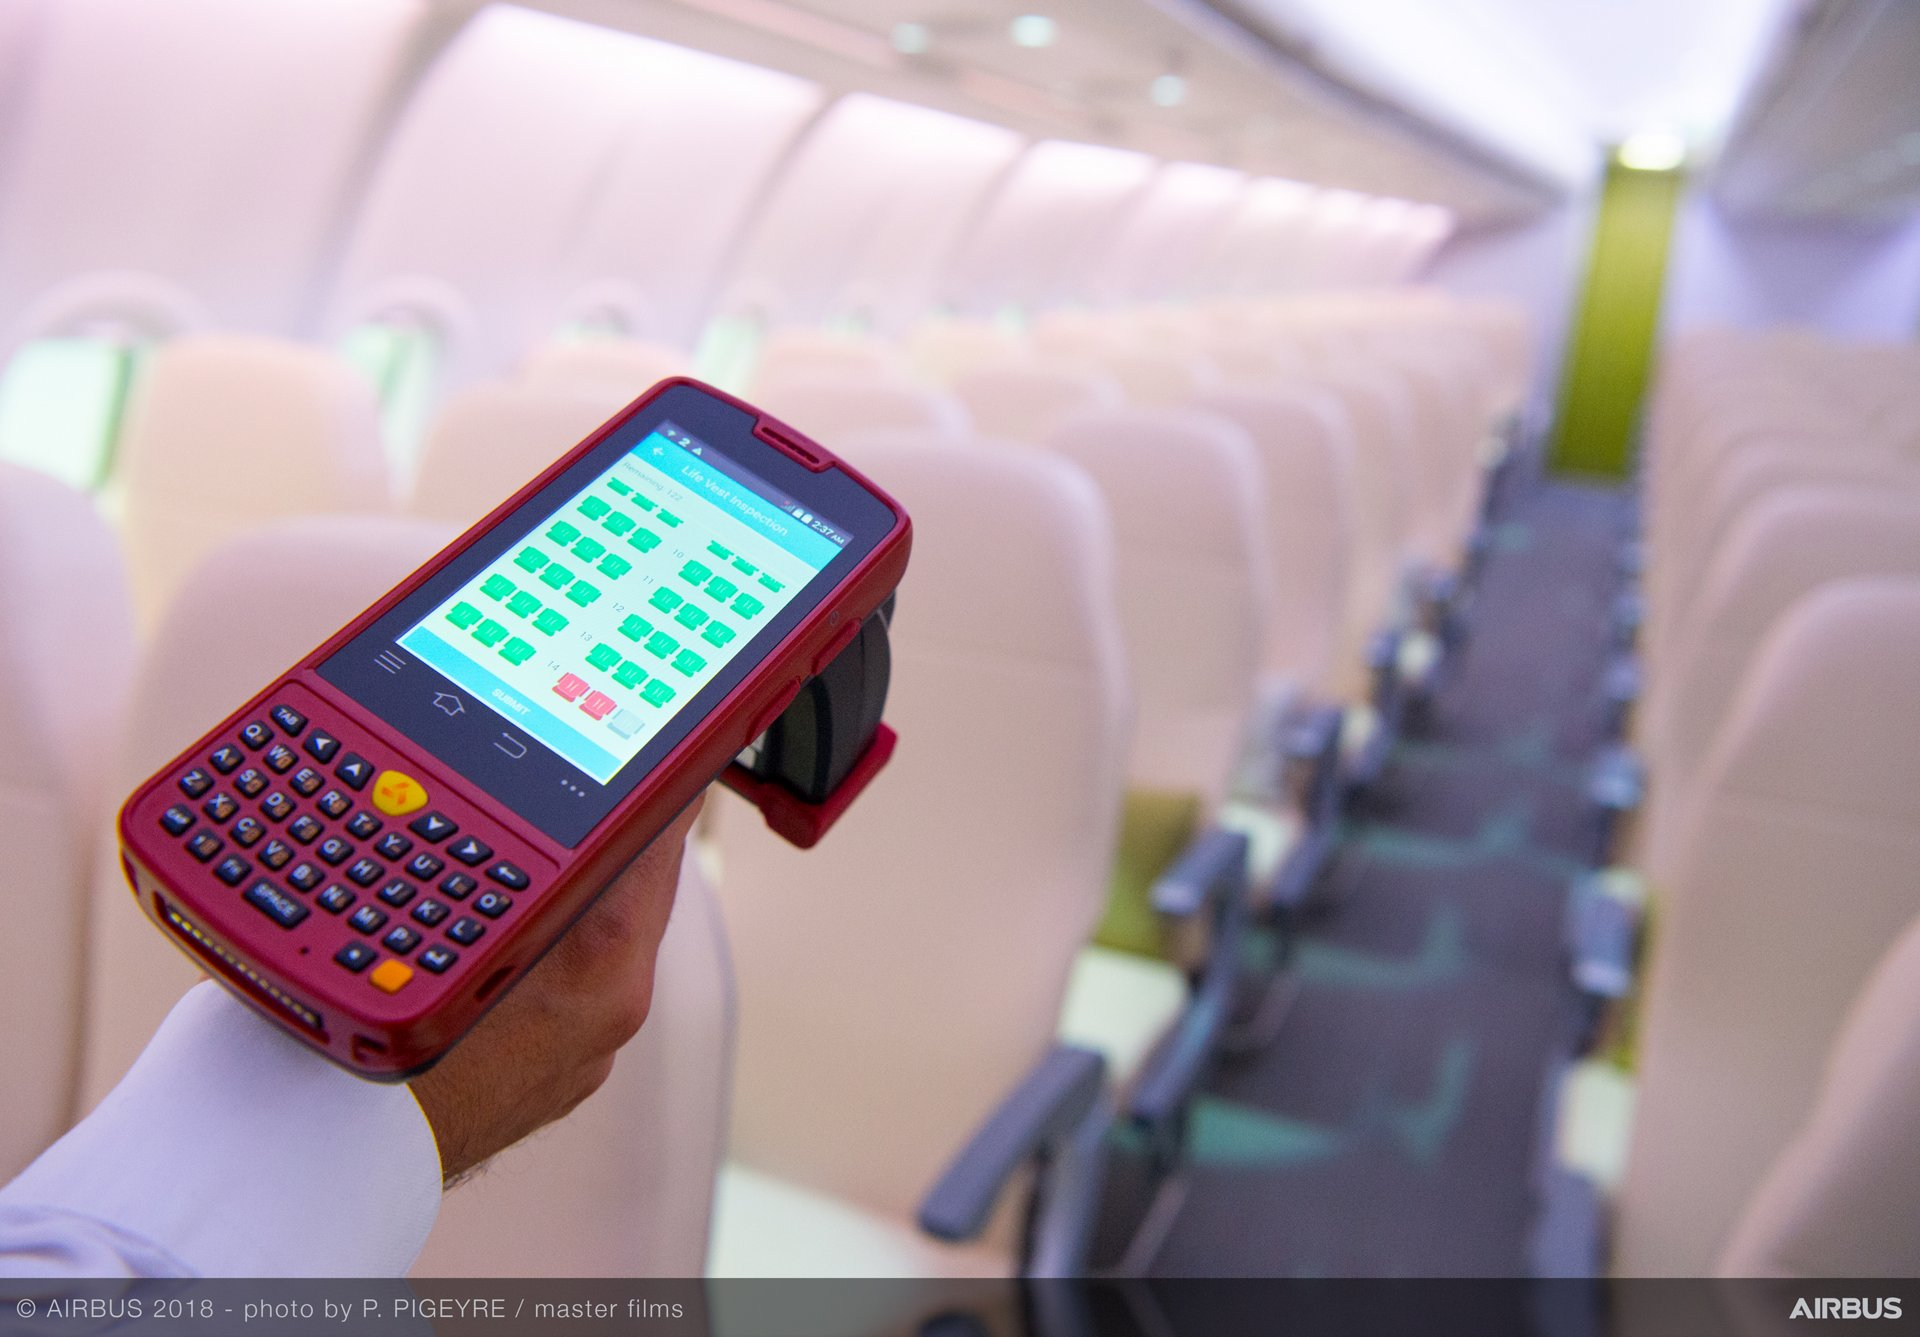 SmartCheck is the Airbus solution for fast digital cabin inspection using RFID tags, improving your maintenance activities in terms of workload, quality and safety.